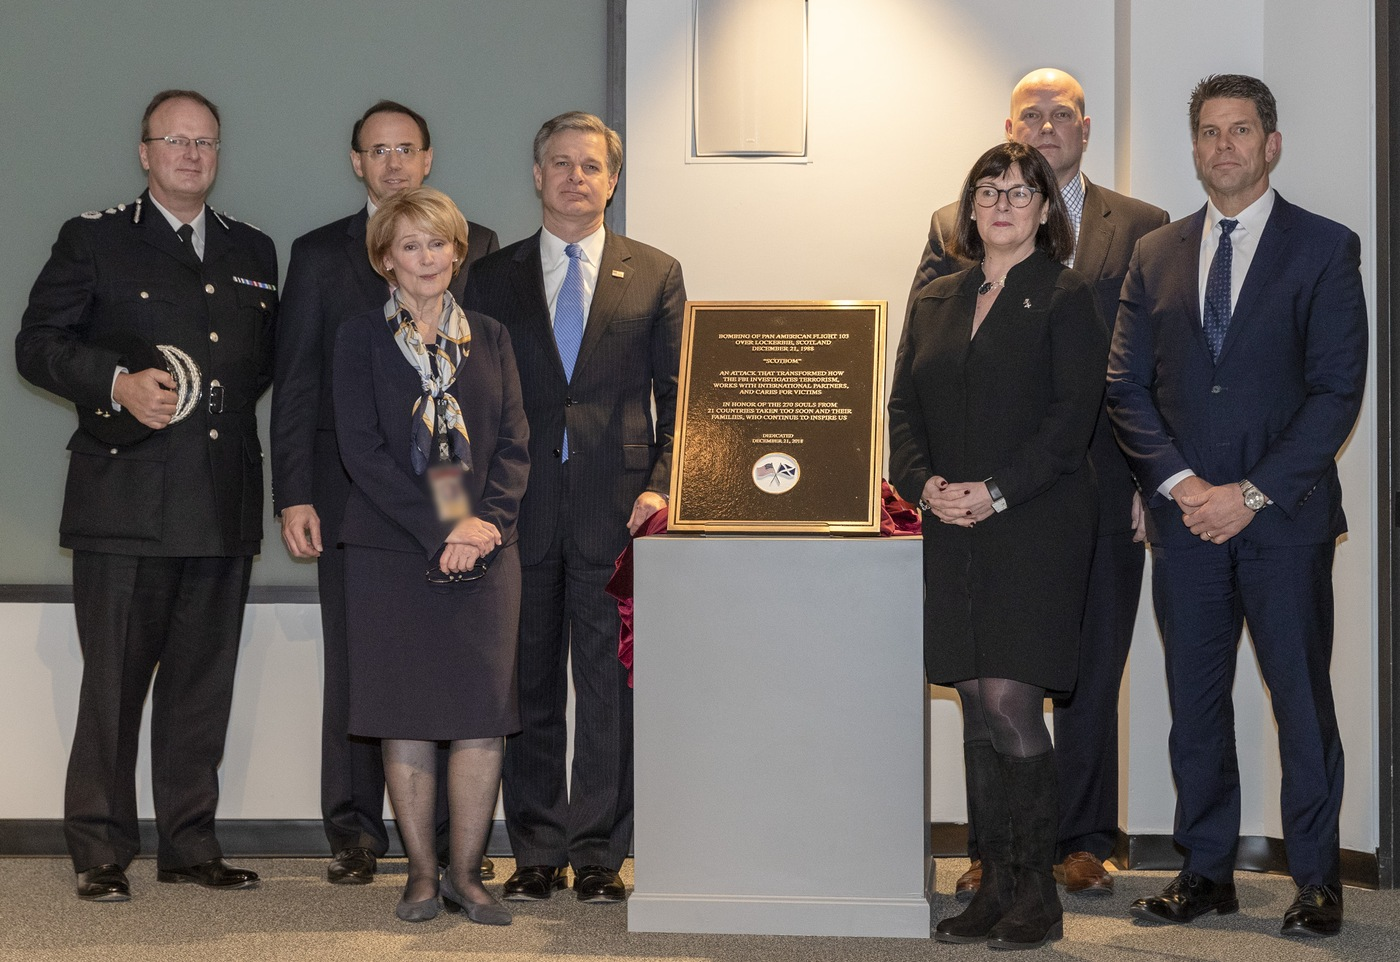 Kathryn Turman and FBI Director Christopher Wray presided over the installation at FBI Headquarters in December 2018 of a plaque marking the 30-year anniversary of the bombing of Pan Am Flight 103 over Lockerbie, Scotland. Also seen are (from left) Police Scotland Deputy Chief Constable Johnny Gwynne, Deputy Attorney General Rod Rosenstein, Allison di Rollo, Solicitor General of Scotland, Acting Attorney General Matthew Whitaker, and FBI Deputy Director David Bowdich.